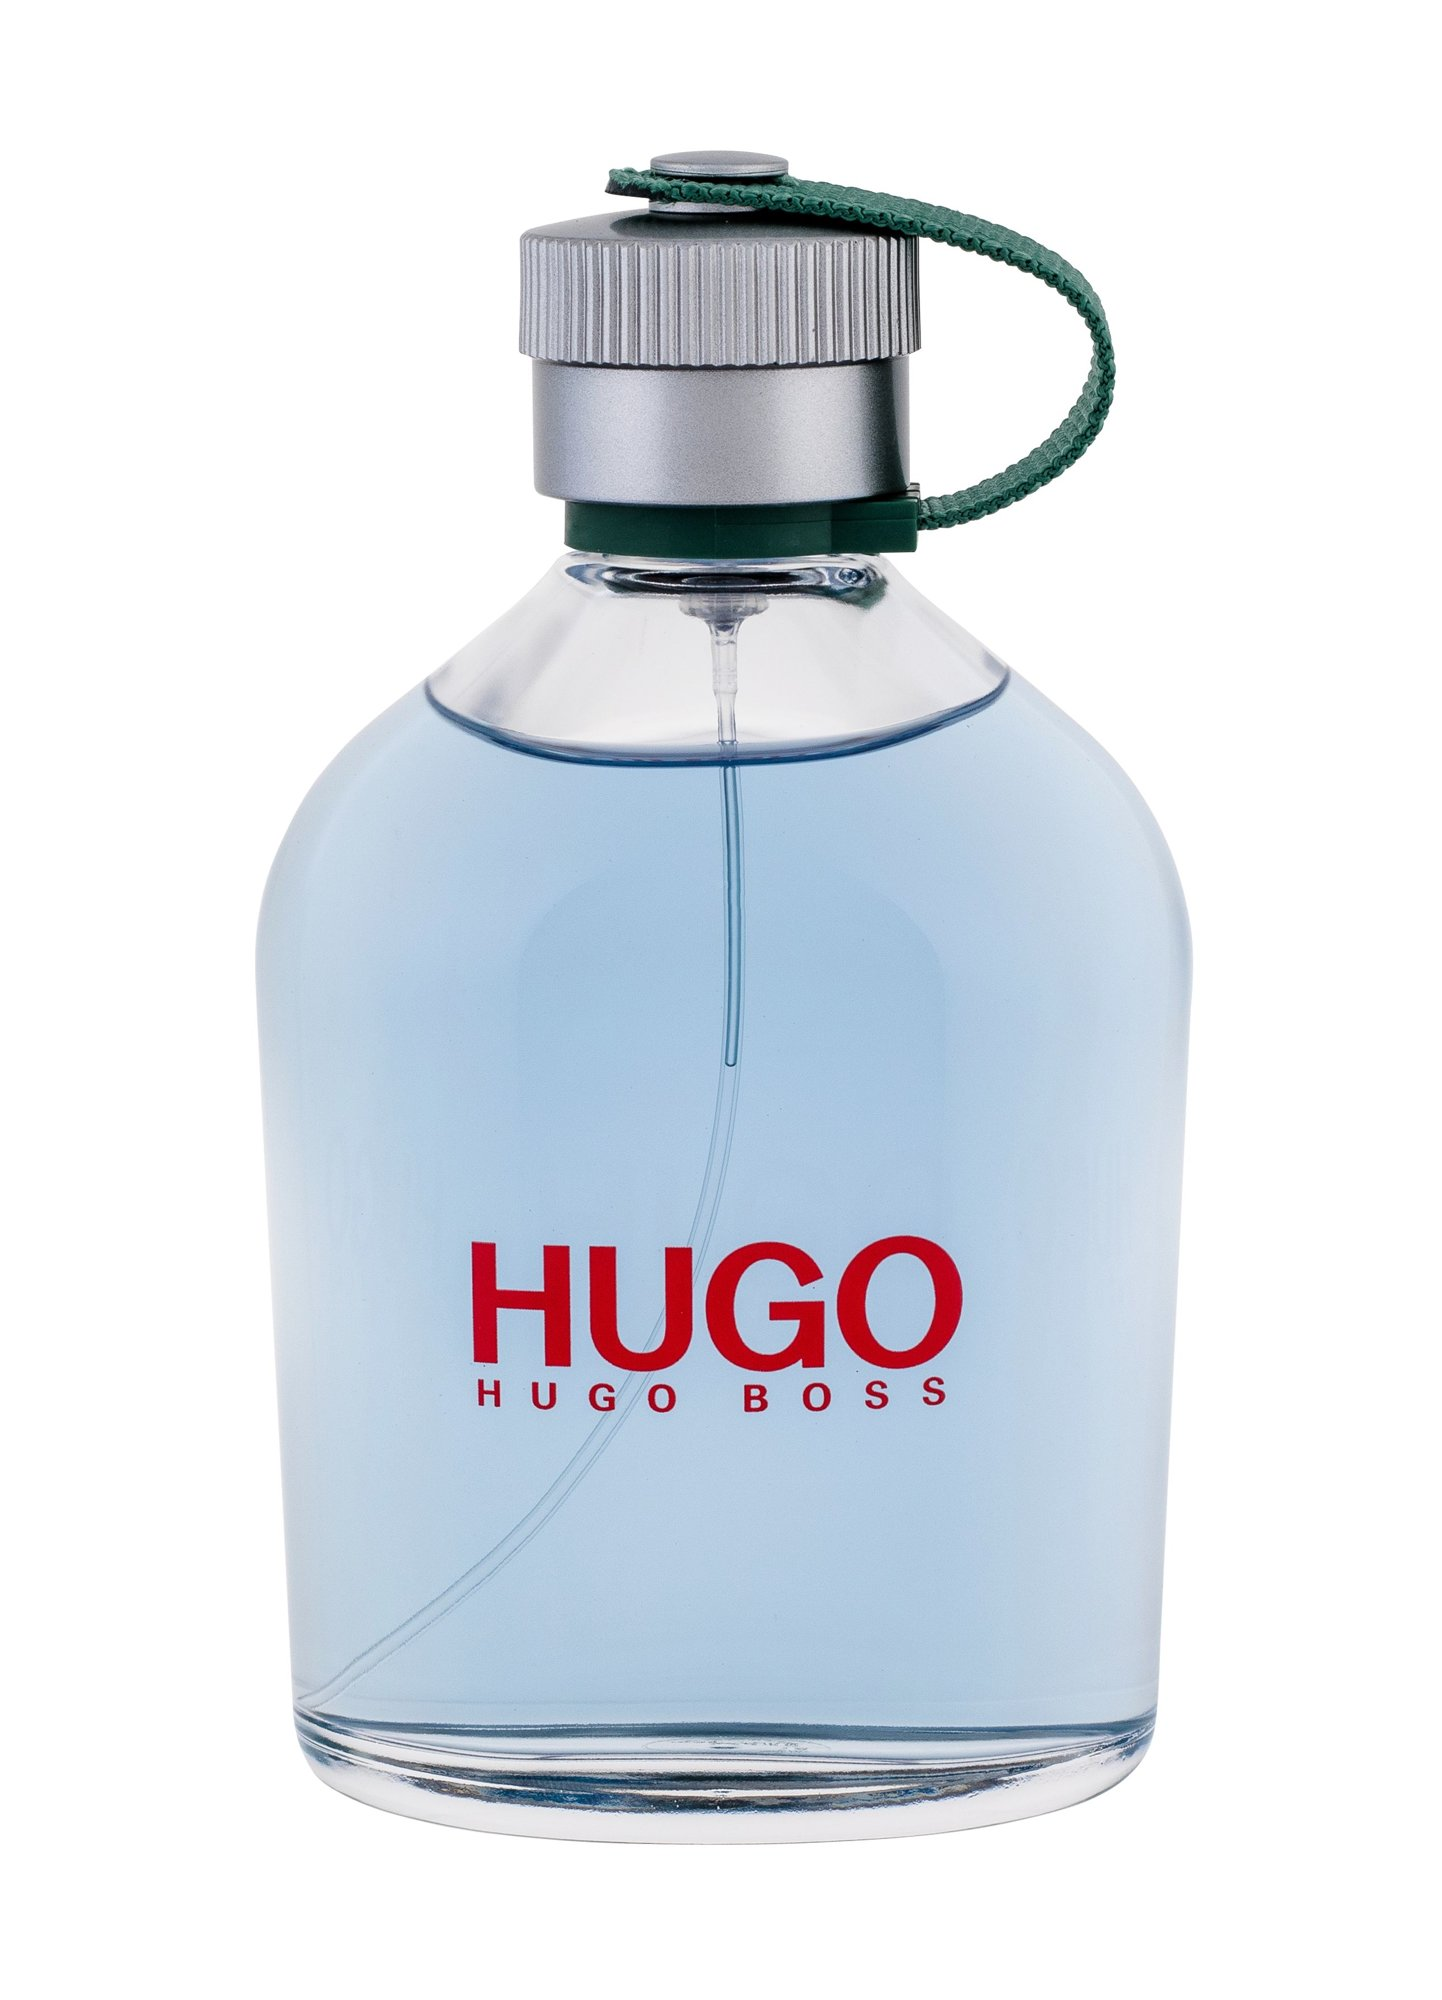 HUGO BOSS Hugo EDT 200ml